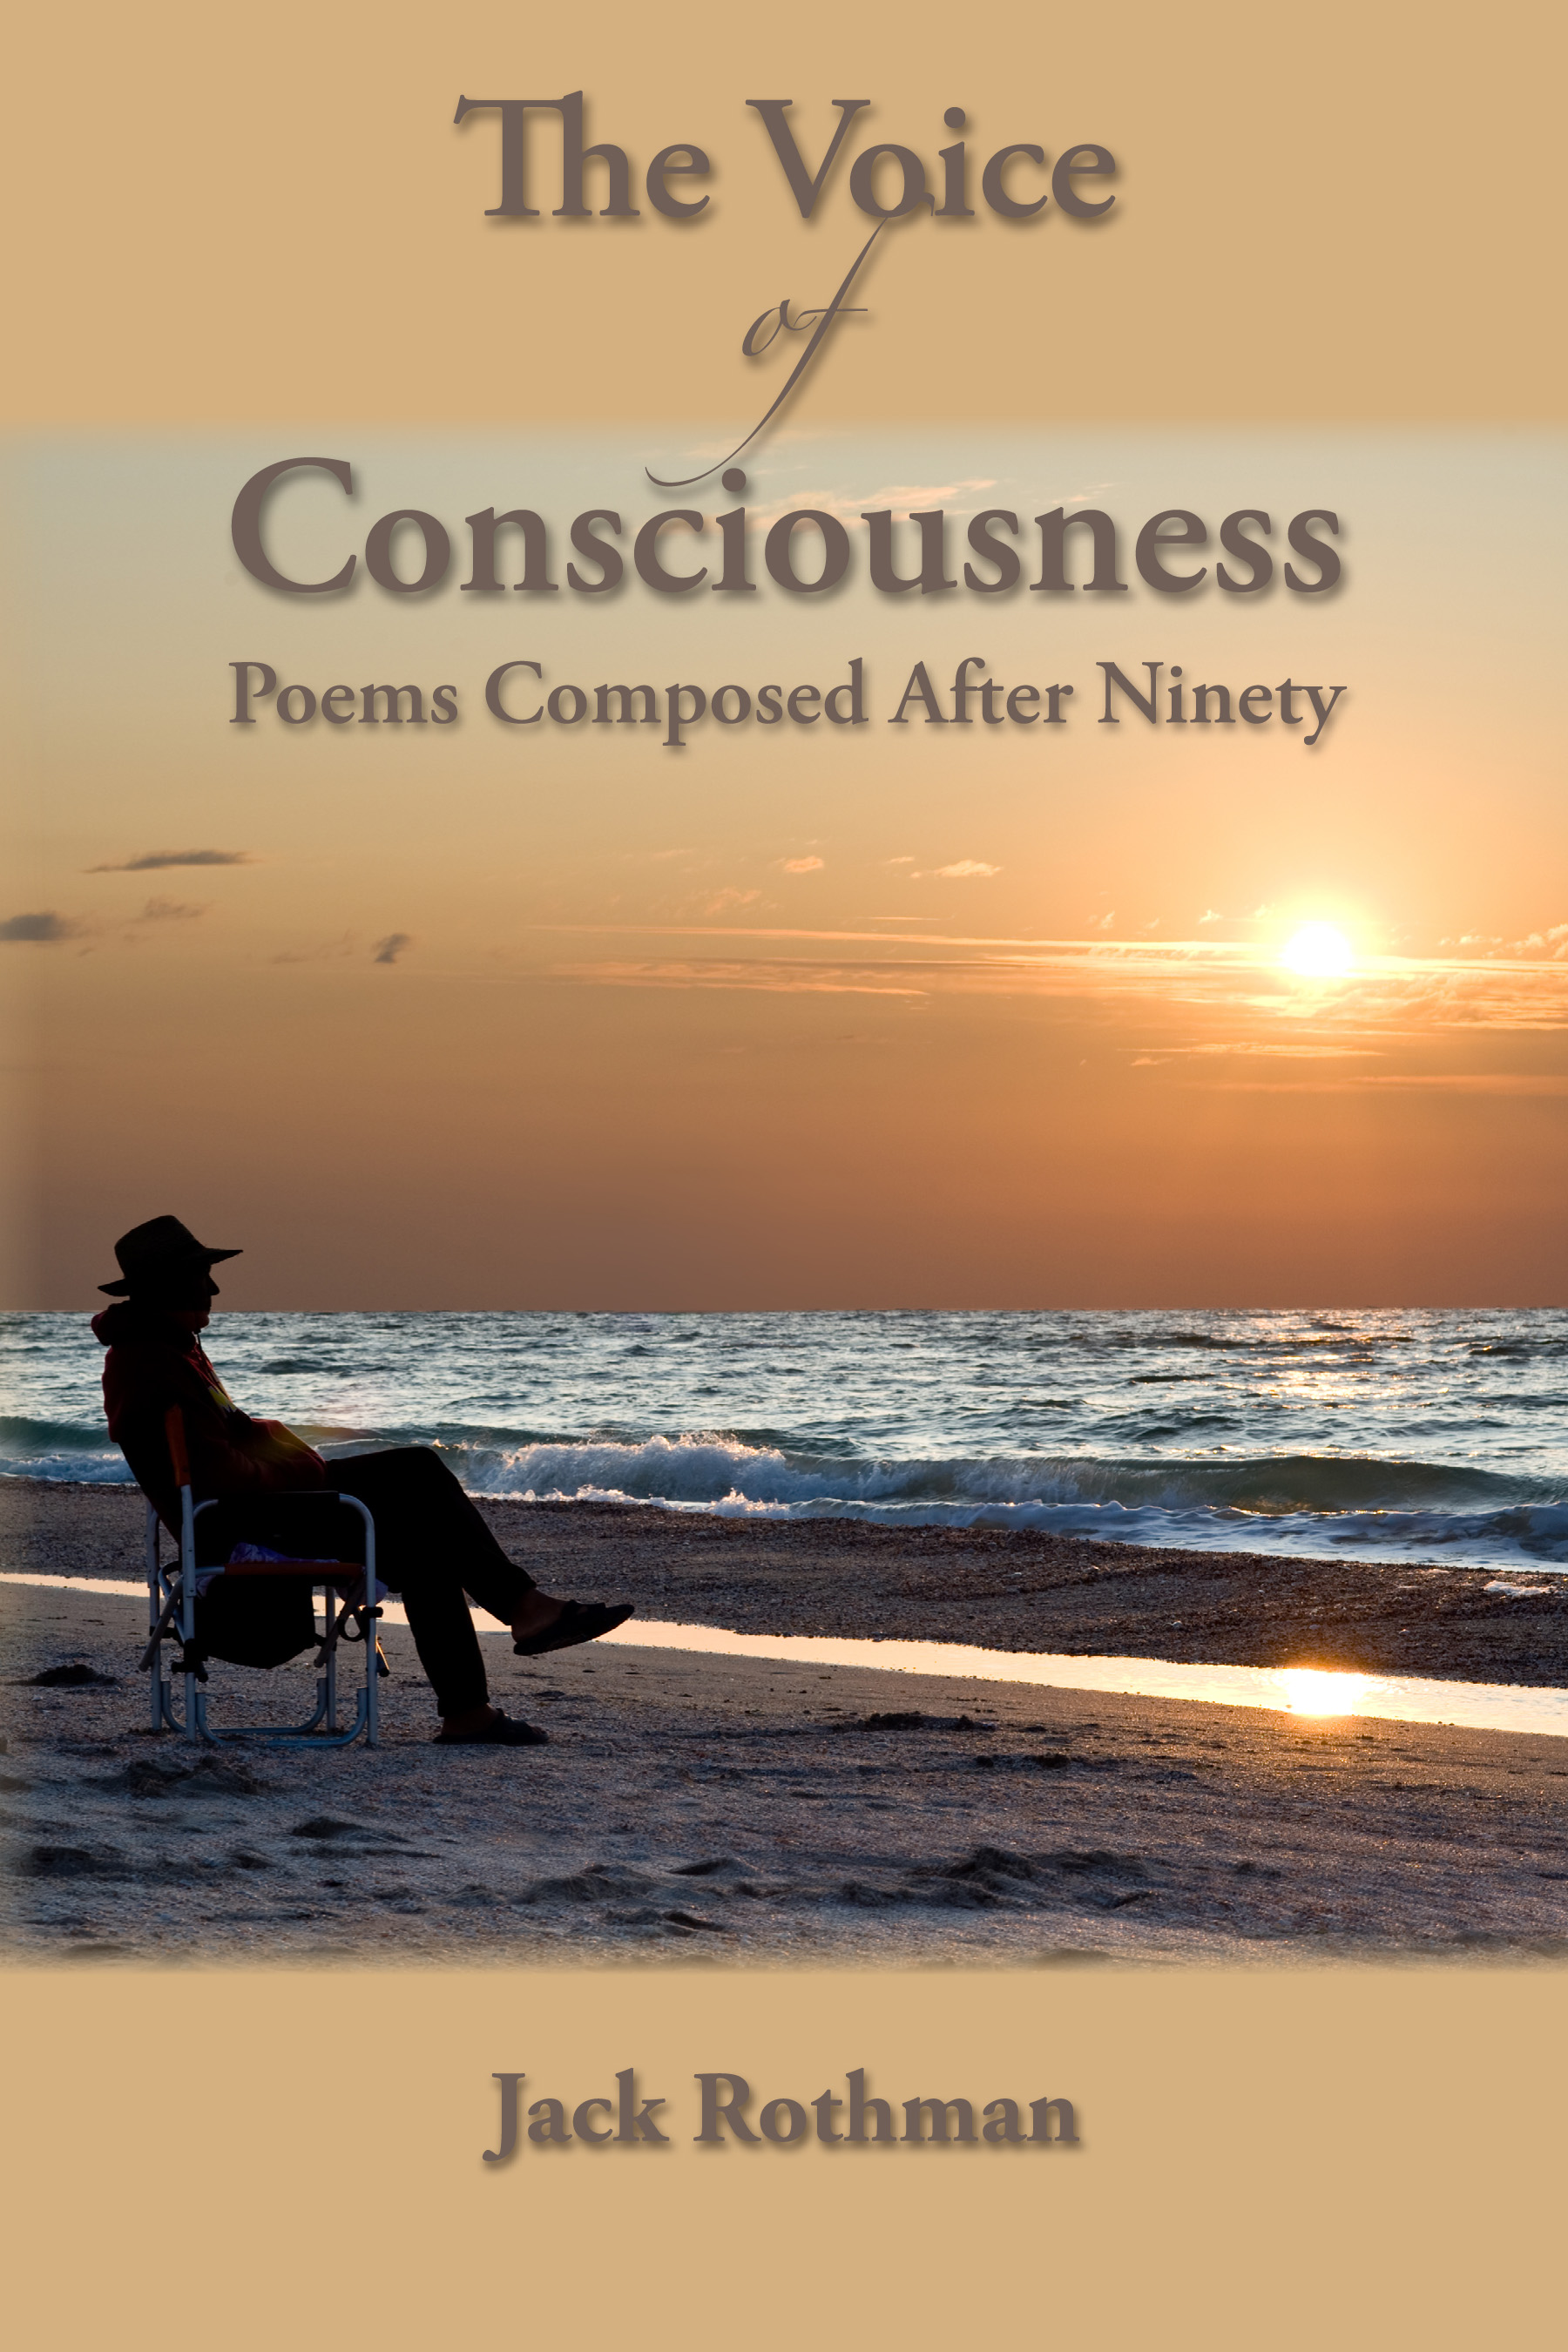 The Voice of Consciousness: Poems Composed After Ninety